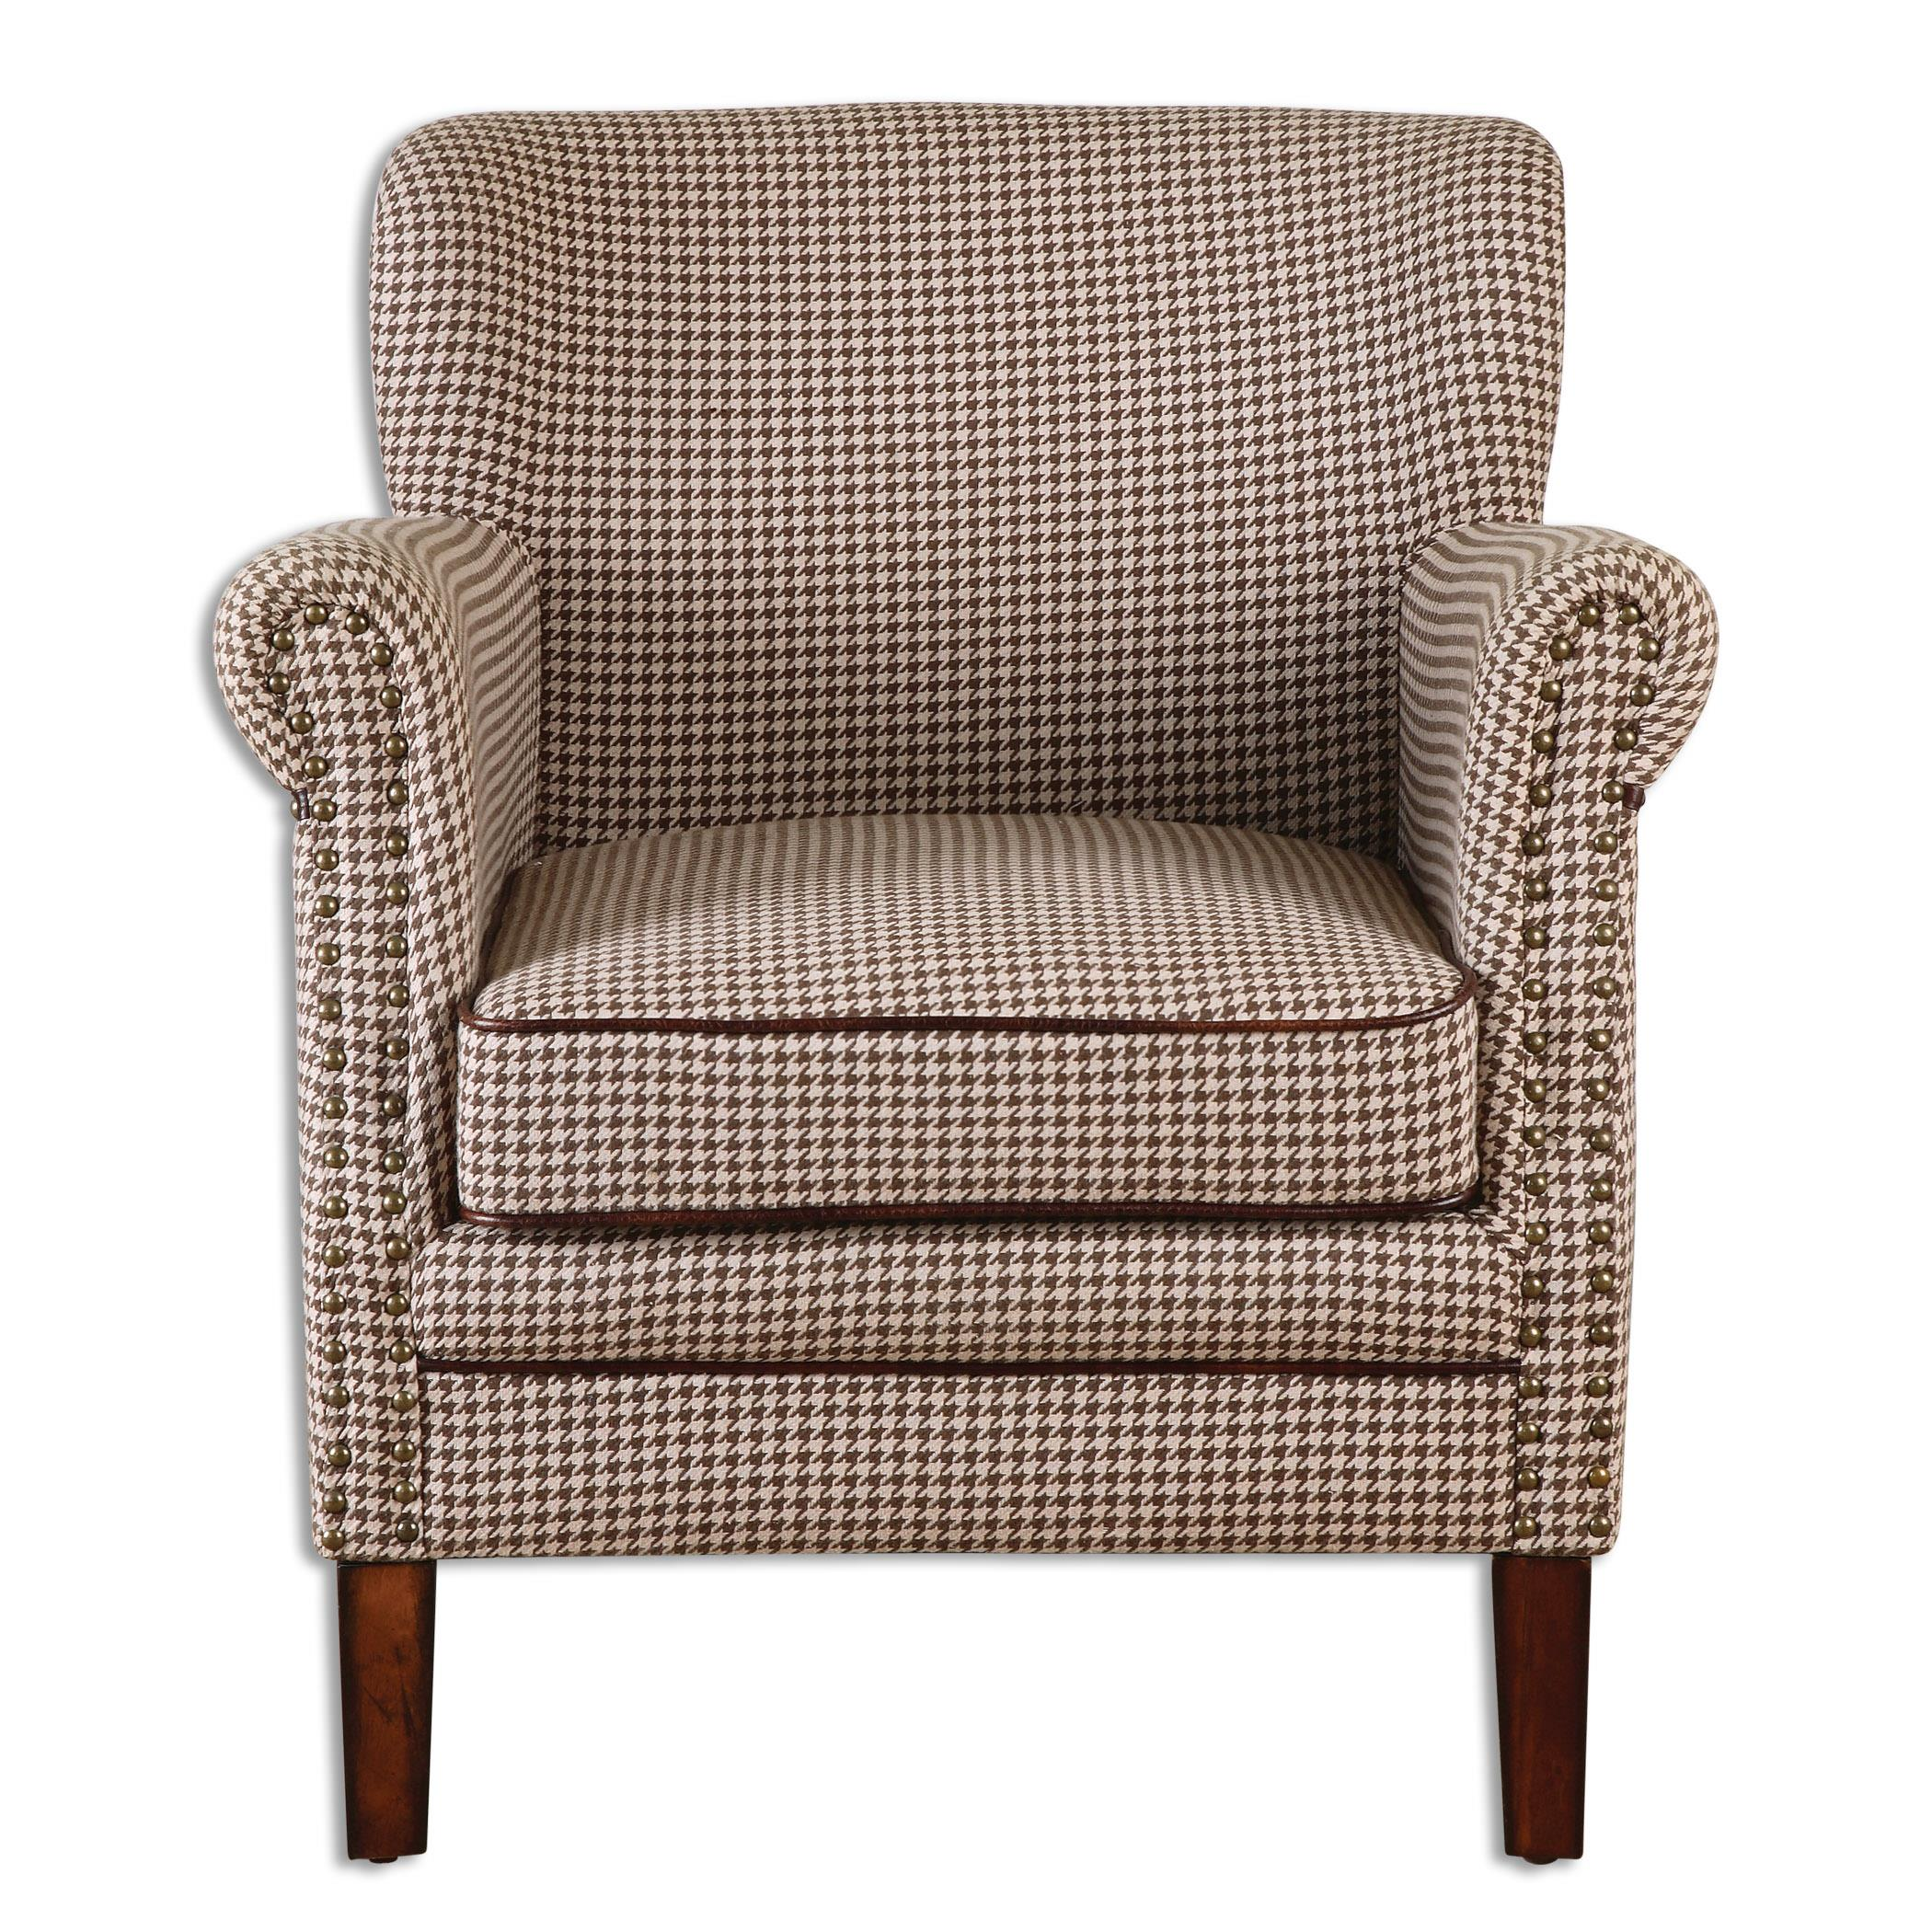 Uttermost Accent Furniture Tinsley Hounds-Tooth Club Chair - Item Number: 23205